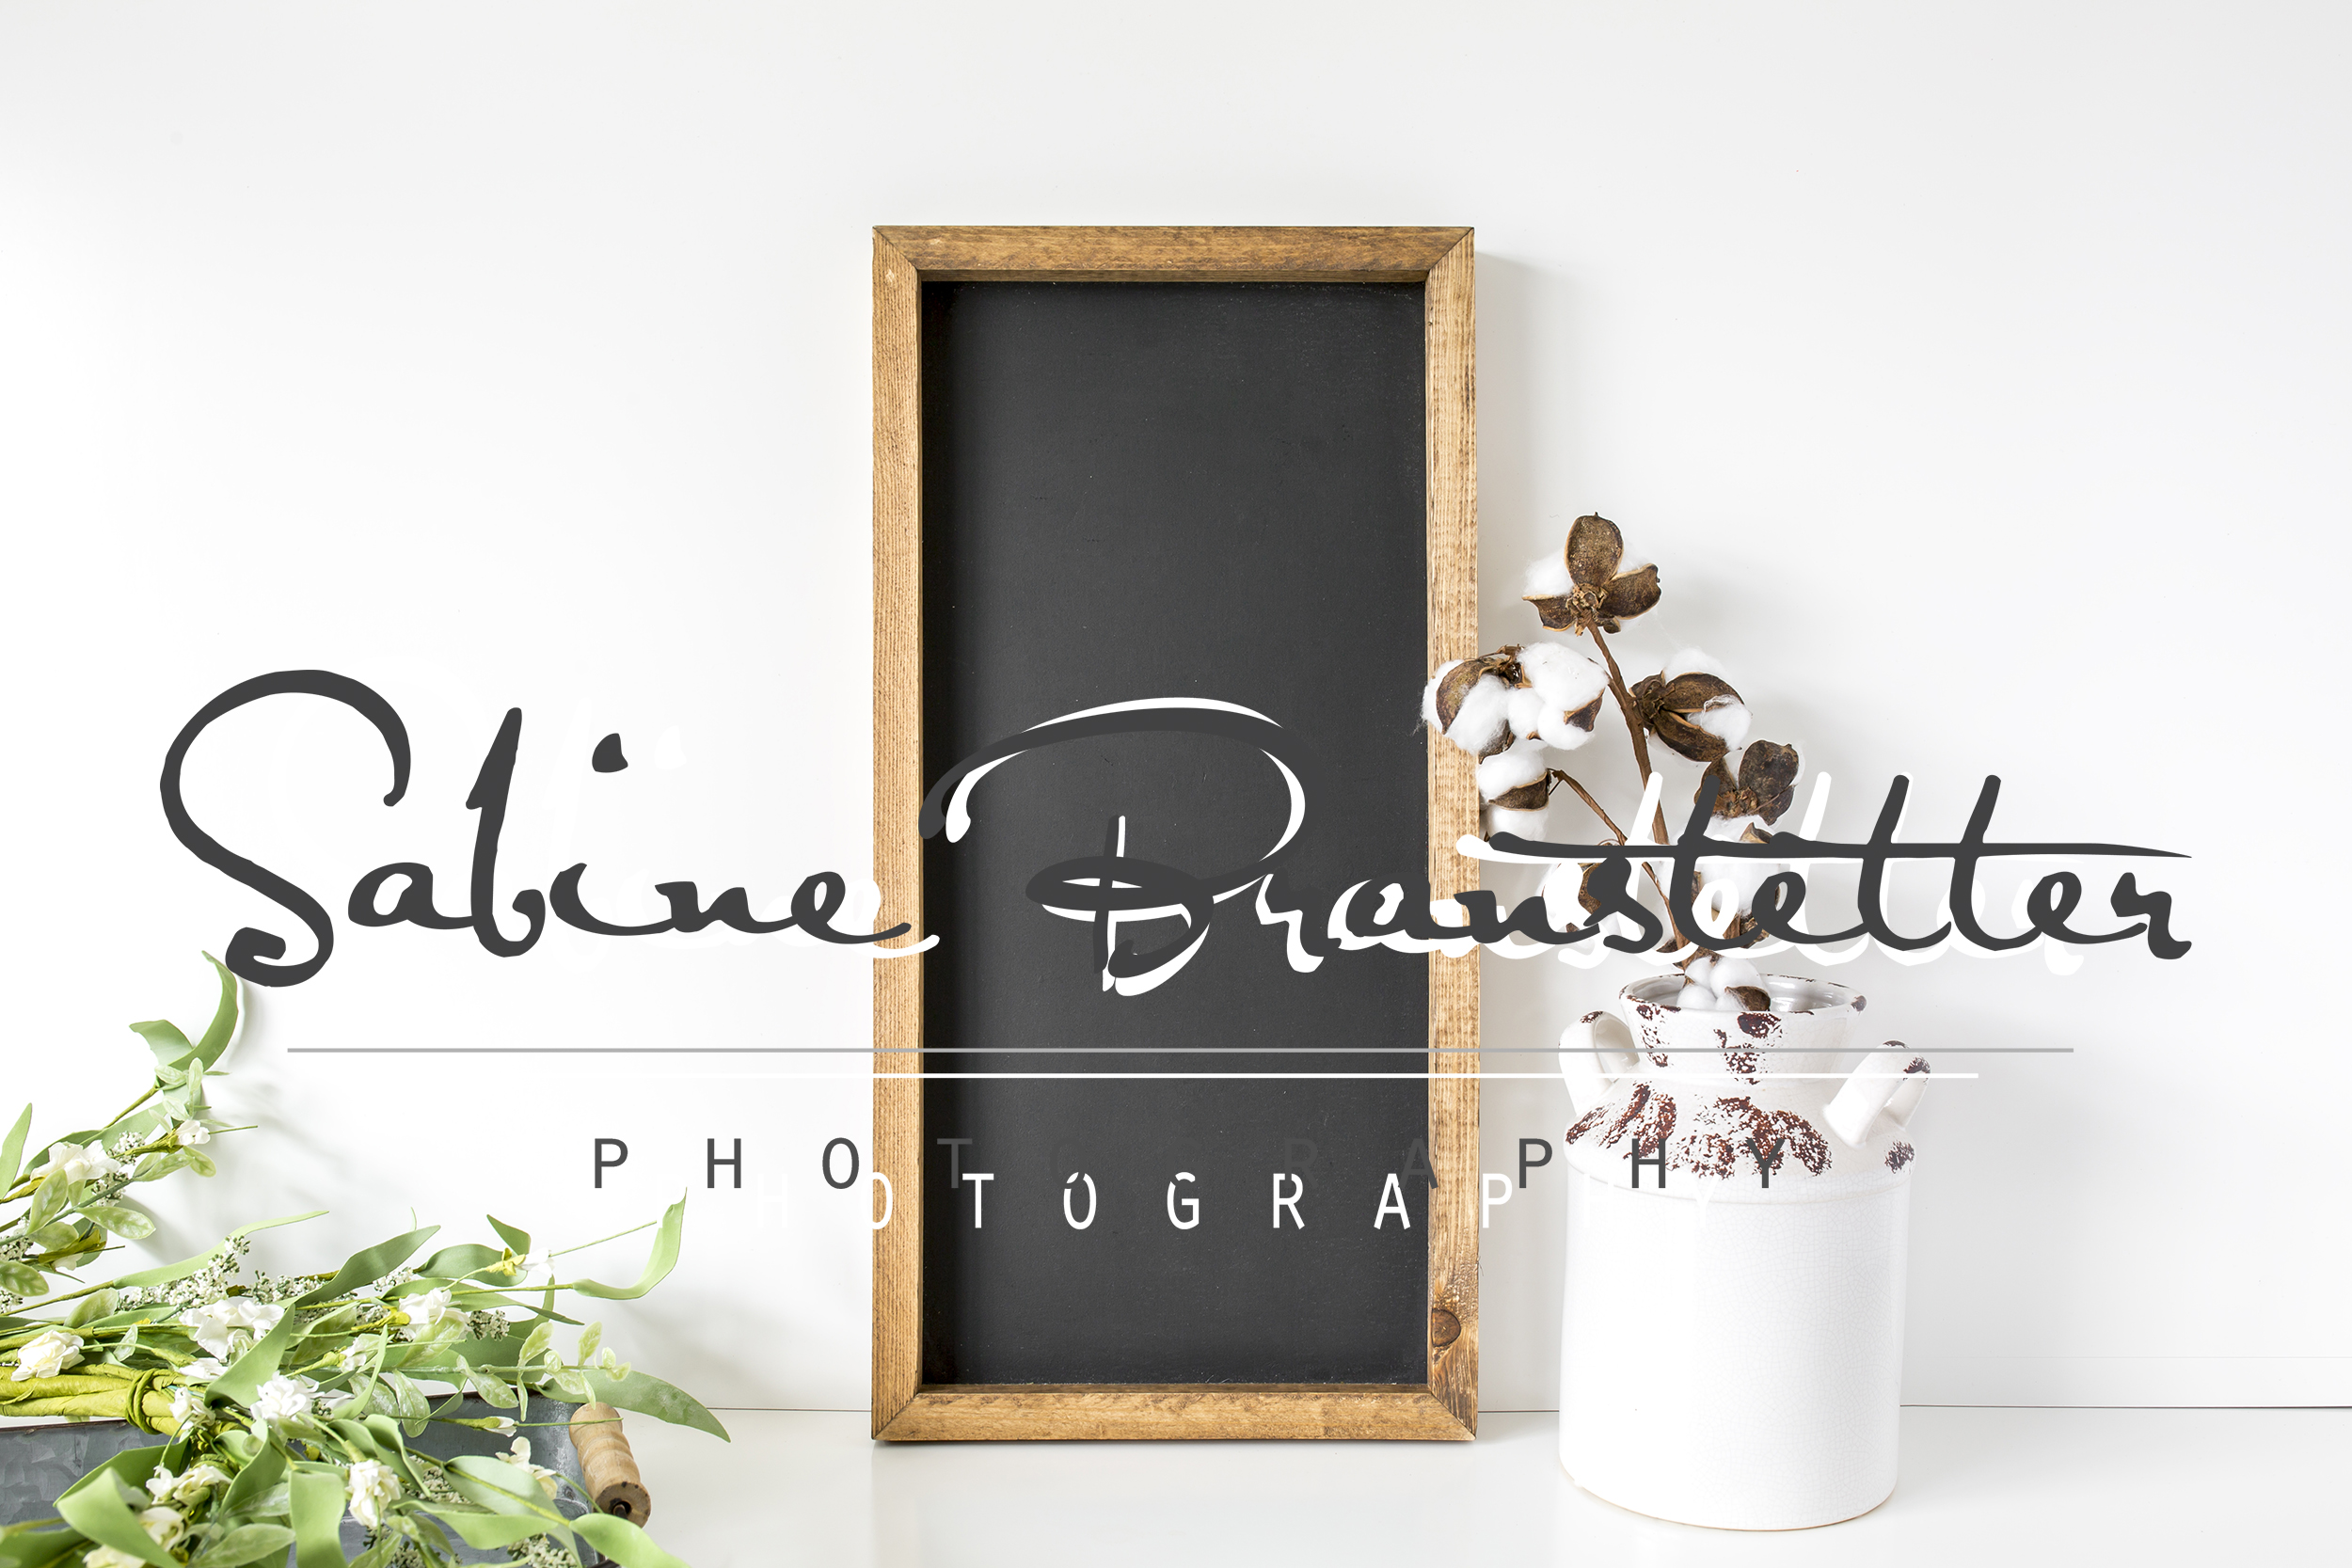 Styled Stock Photography Vertical Chalkboard Sign Mockup example image 1